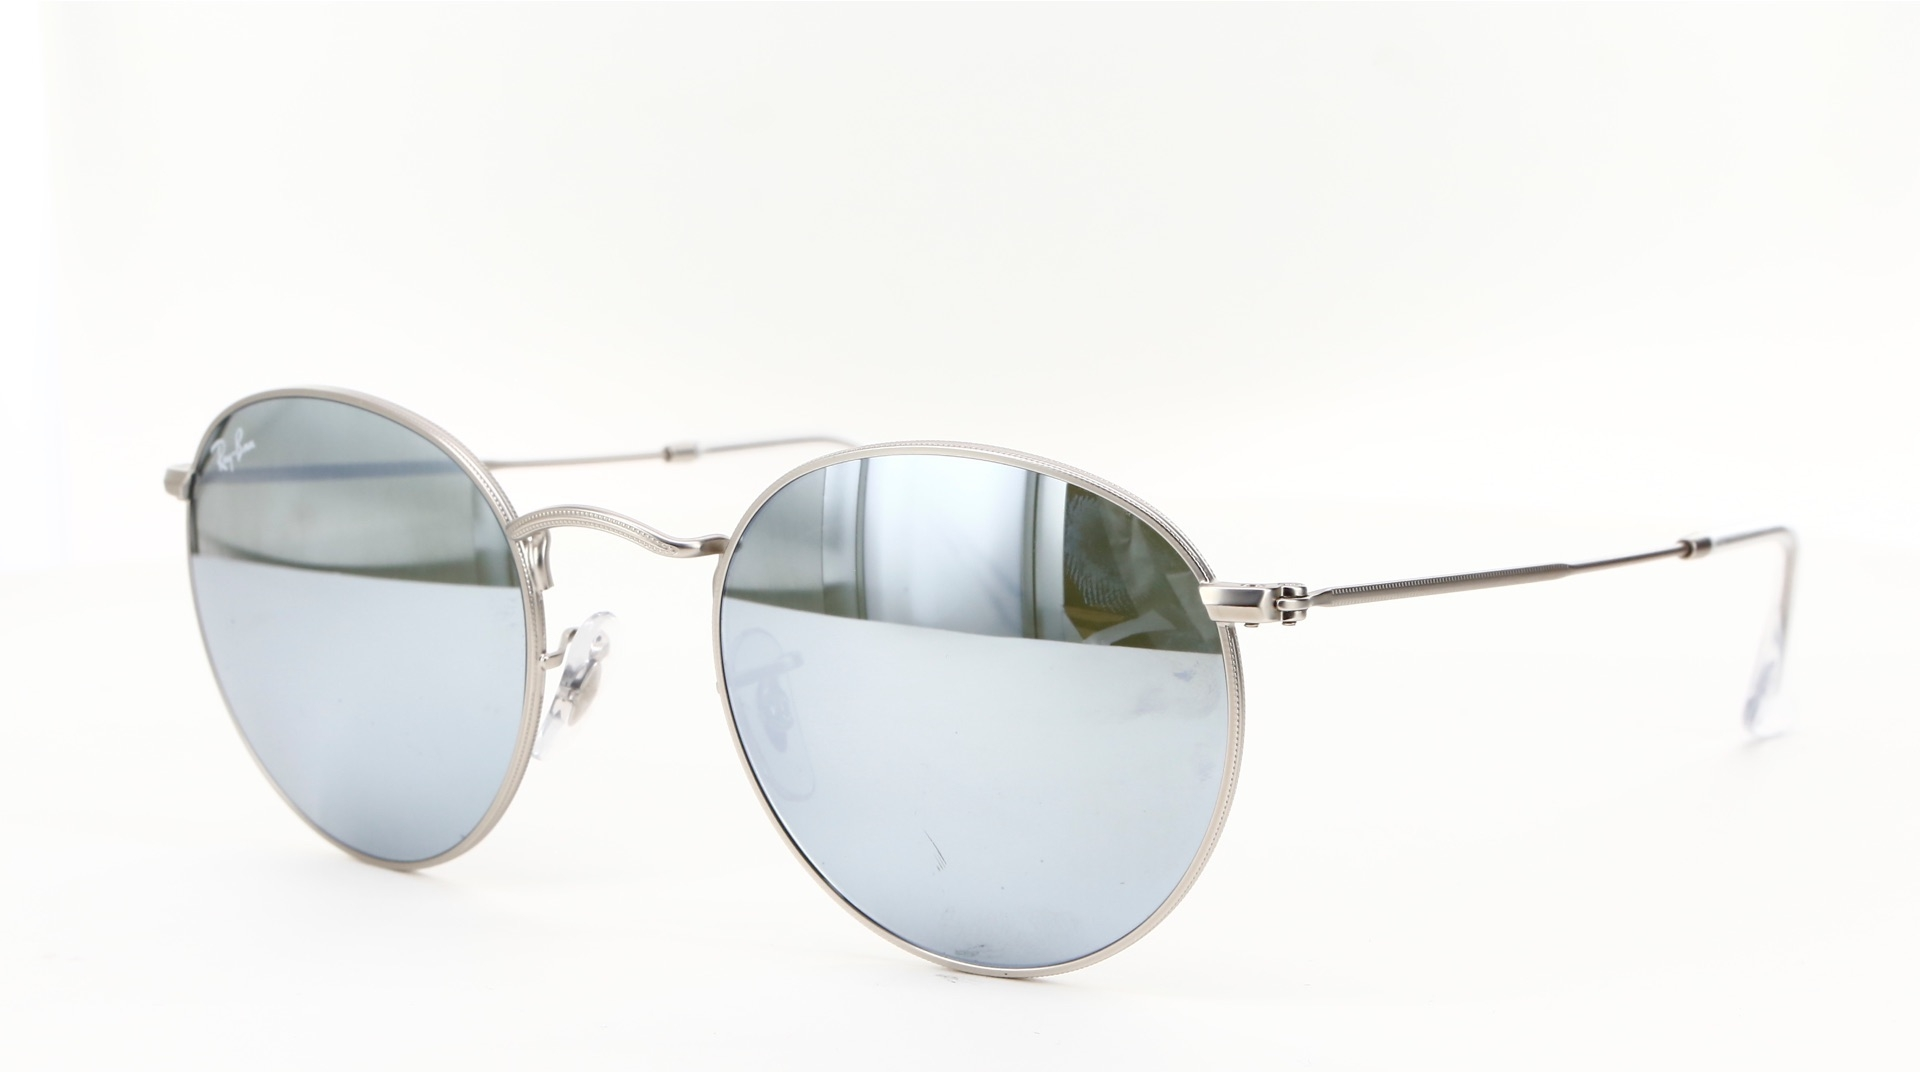 Ray-Ban - ref: 72409